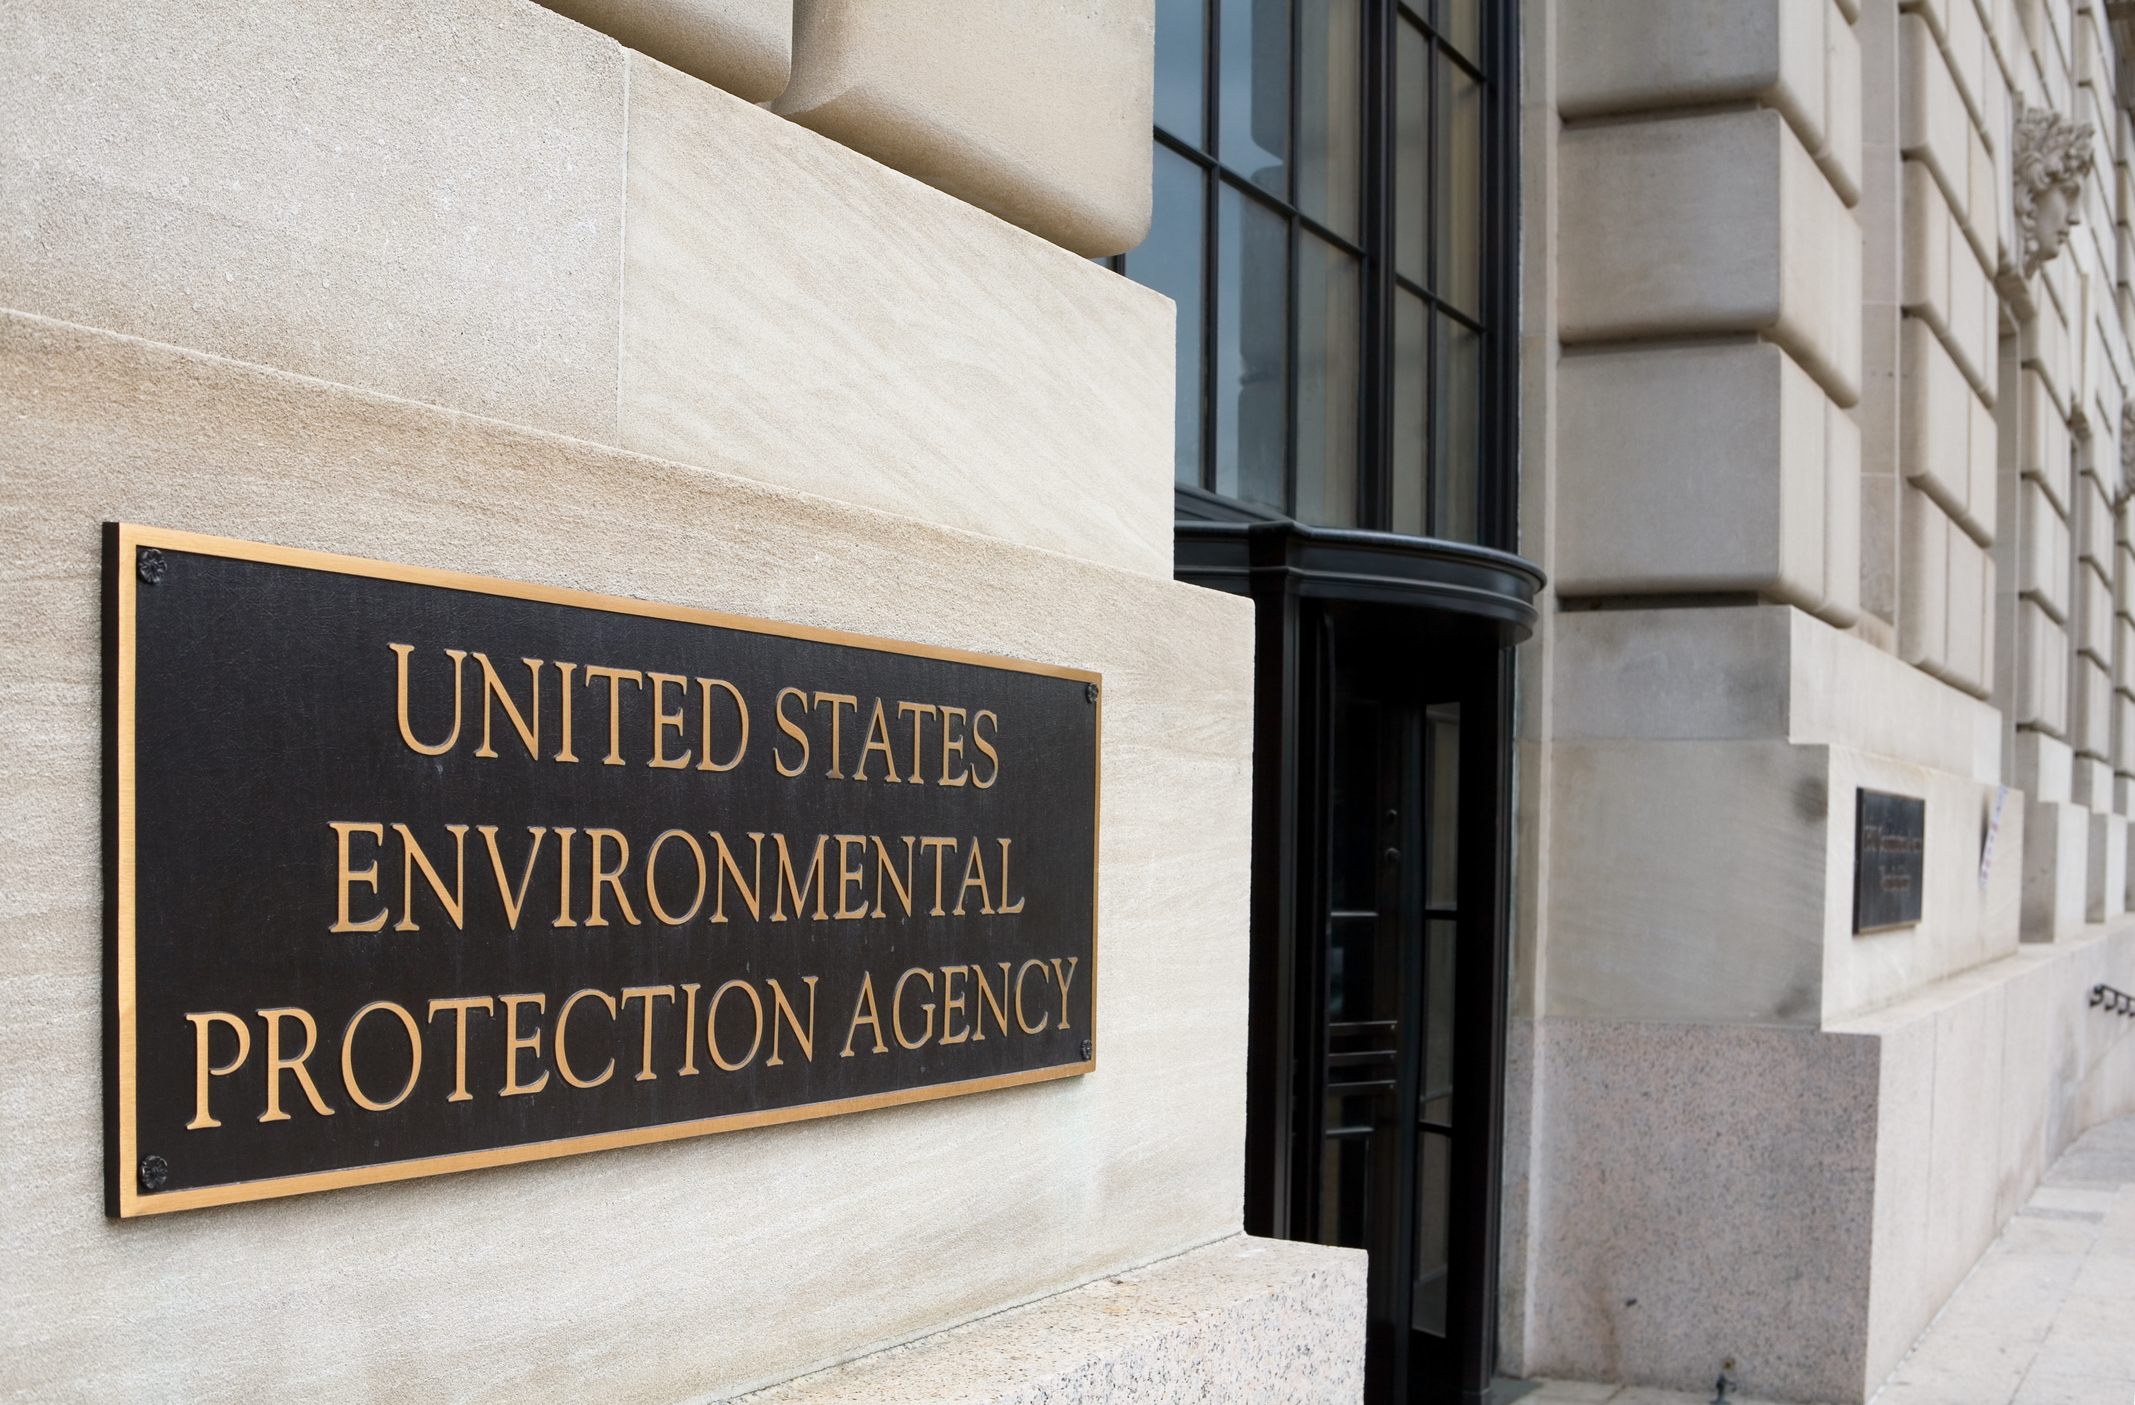 US stops enforcing many environmental laws, citing pandemic